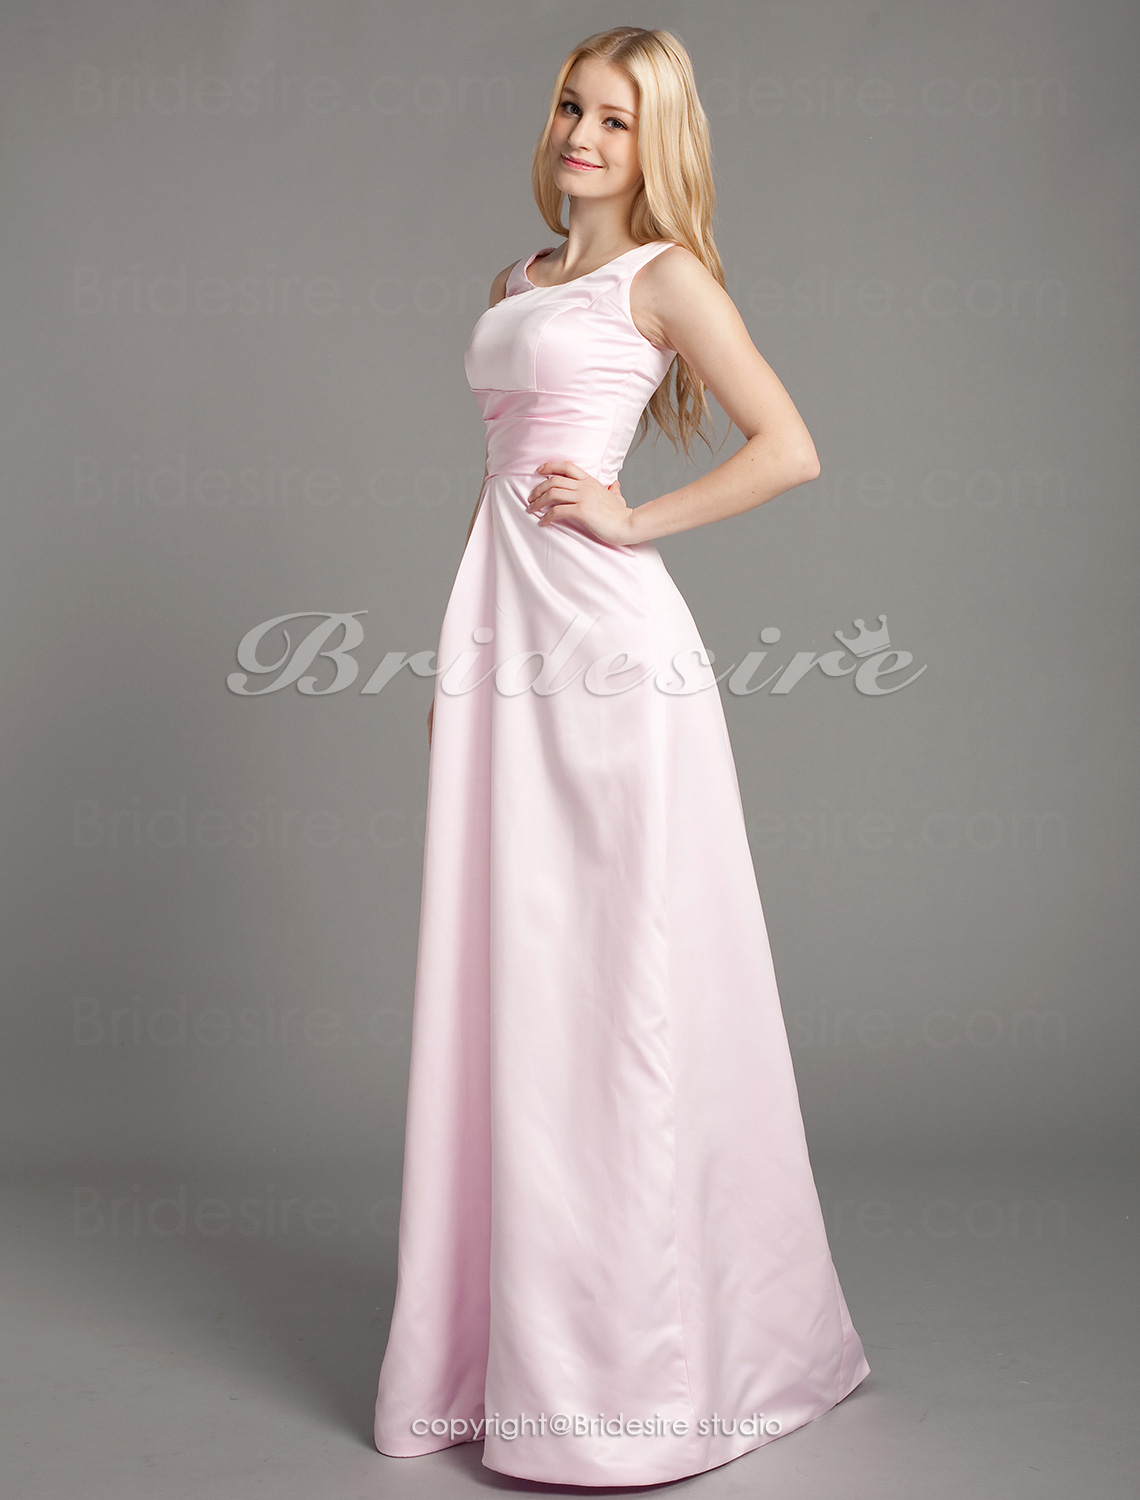 A-line Strapless Sleeveless Chapel Train Satin Wedding Dress wit